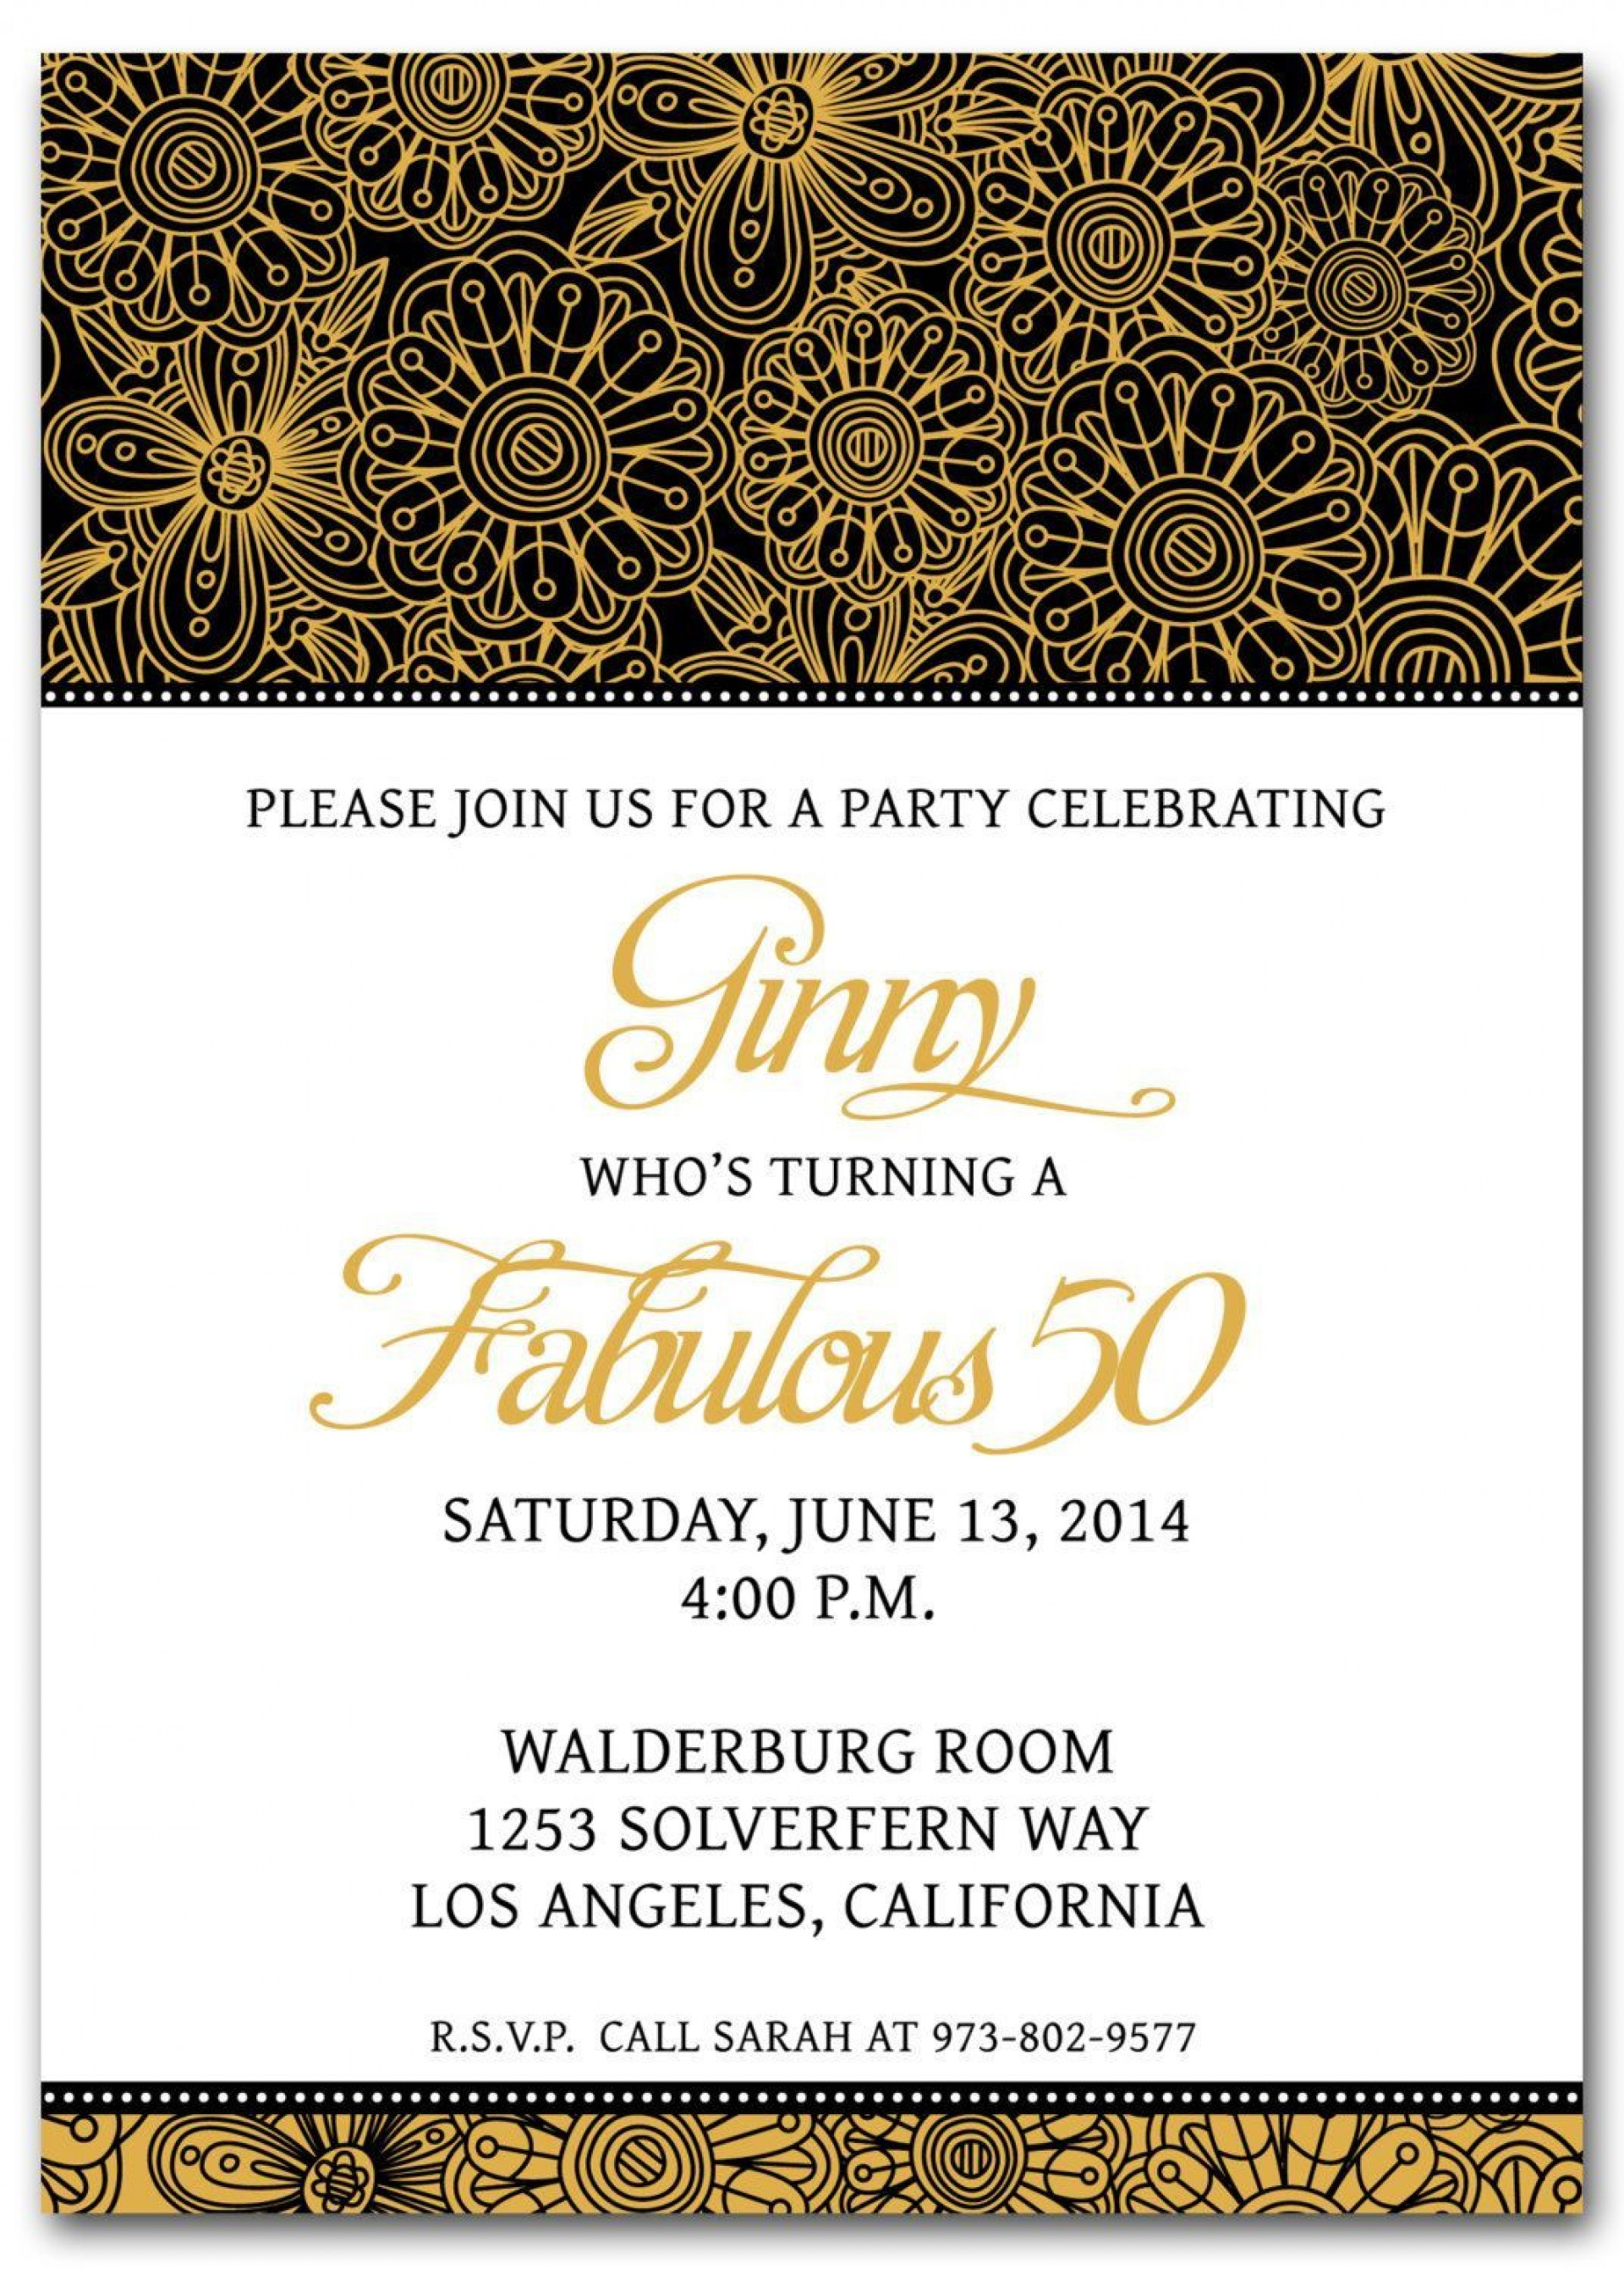 001 Breathtaking 50th Anniversary Invitation Template Free Download Highest Quality  Golden Wedding1920